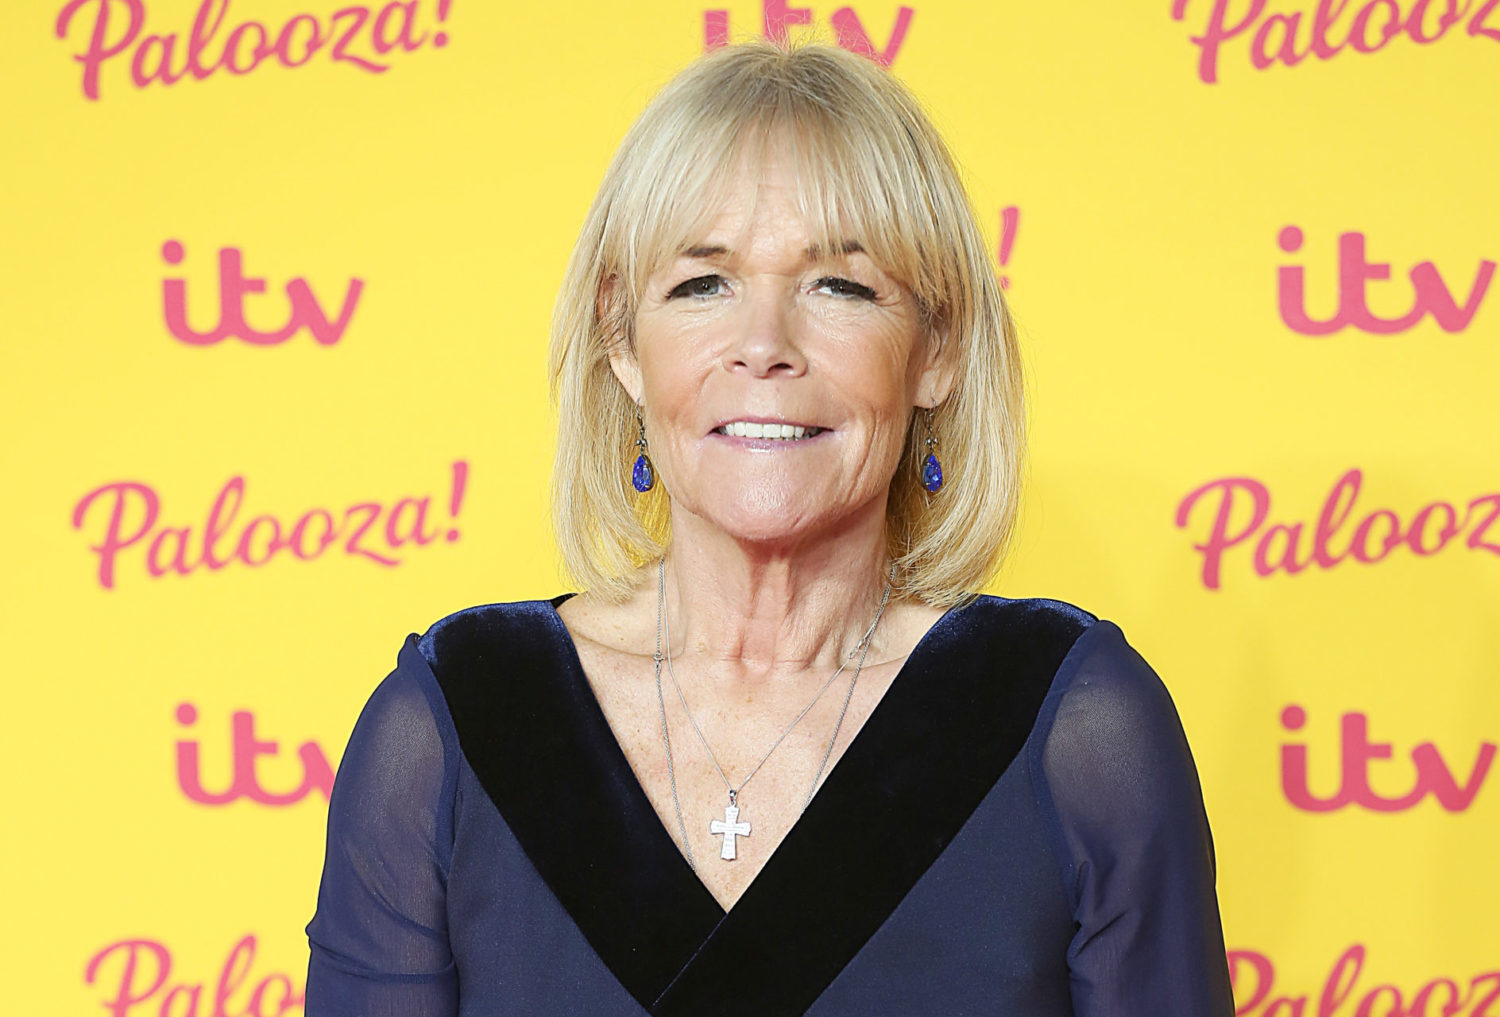 Linda Robson jokes 'lockdown's finally taken its toll' in new video